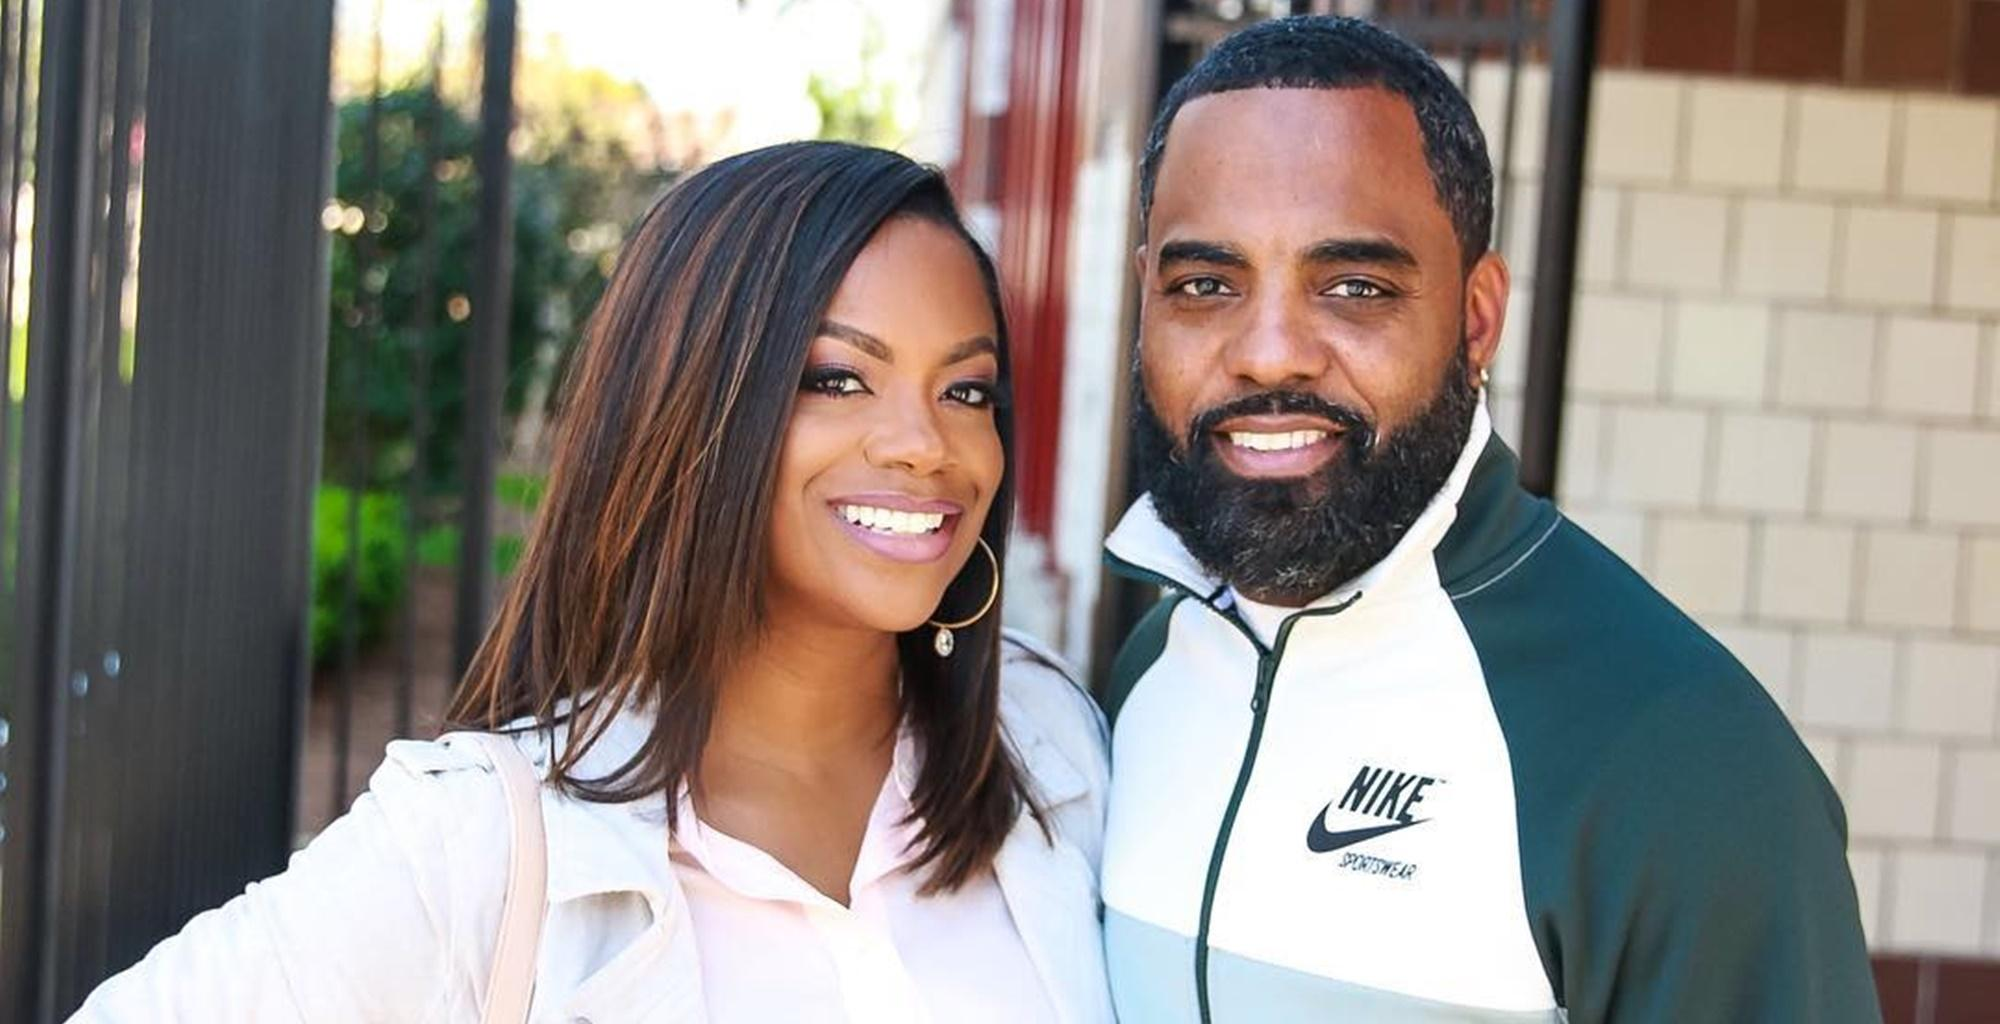 Kandi Burrus Shares Intimate Pictures With Todd Tucker On Their Wedding Anniversary